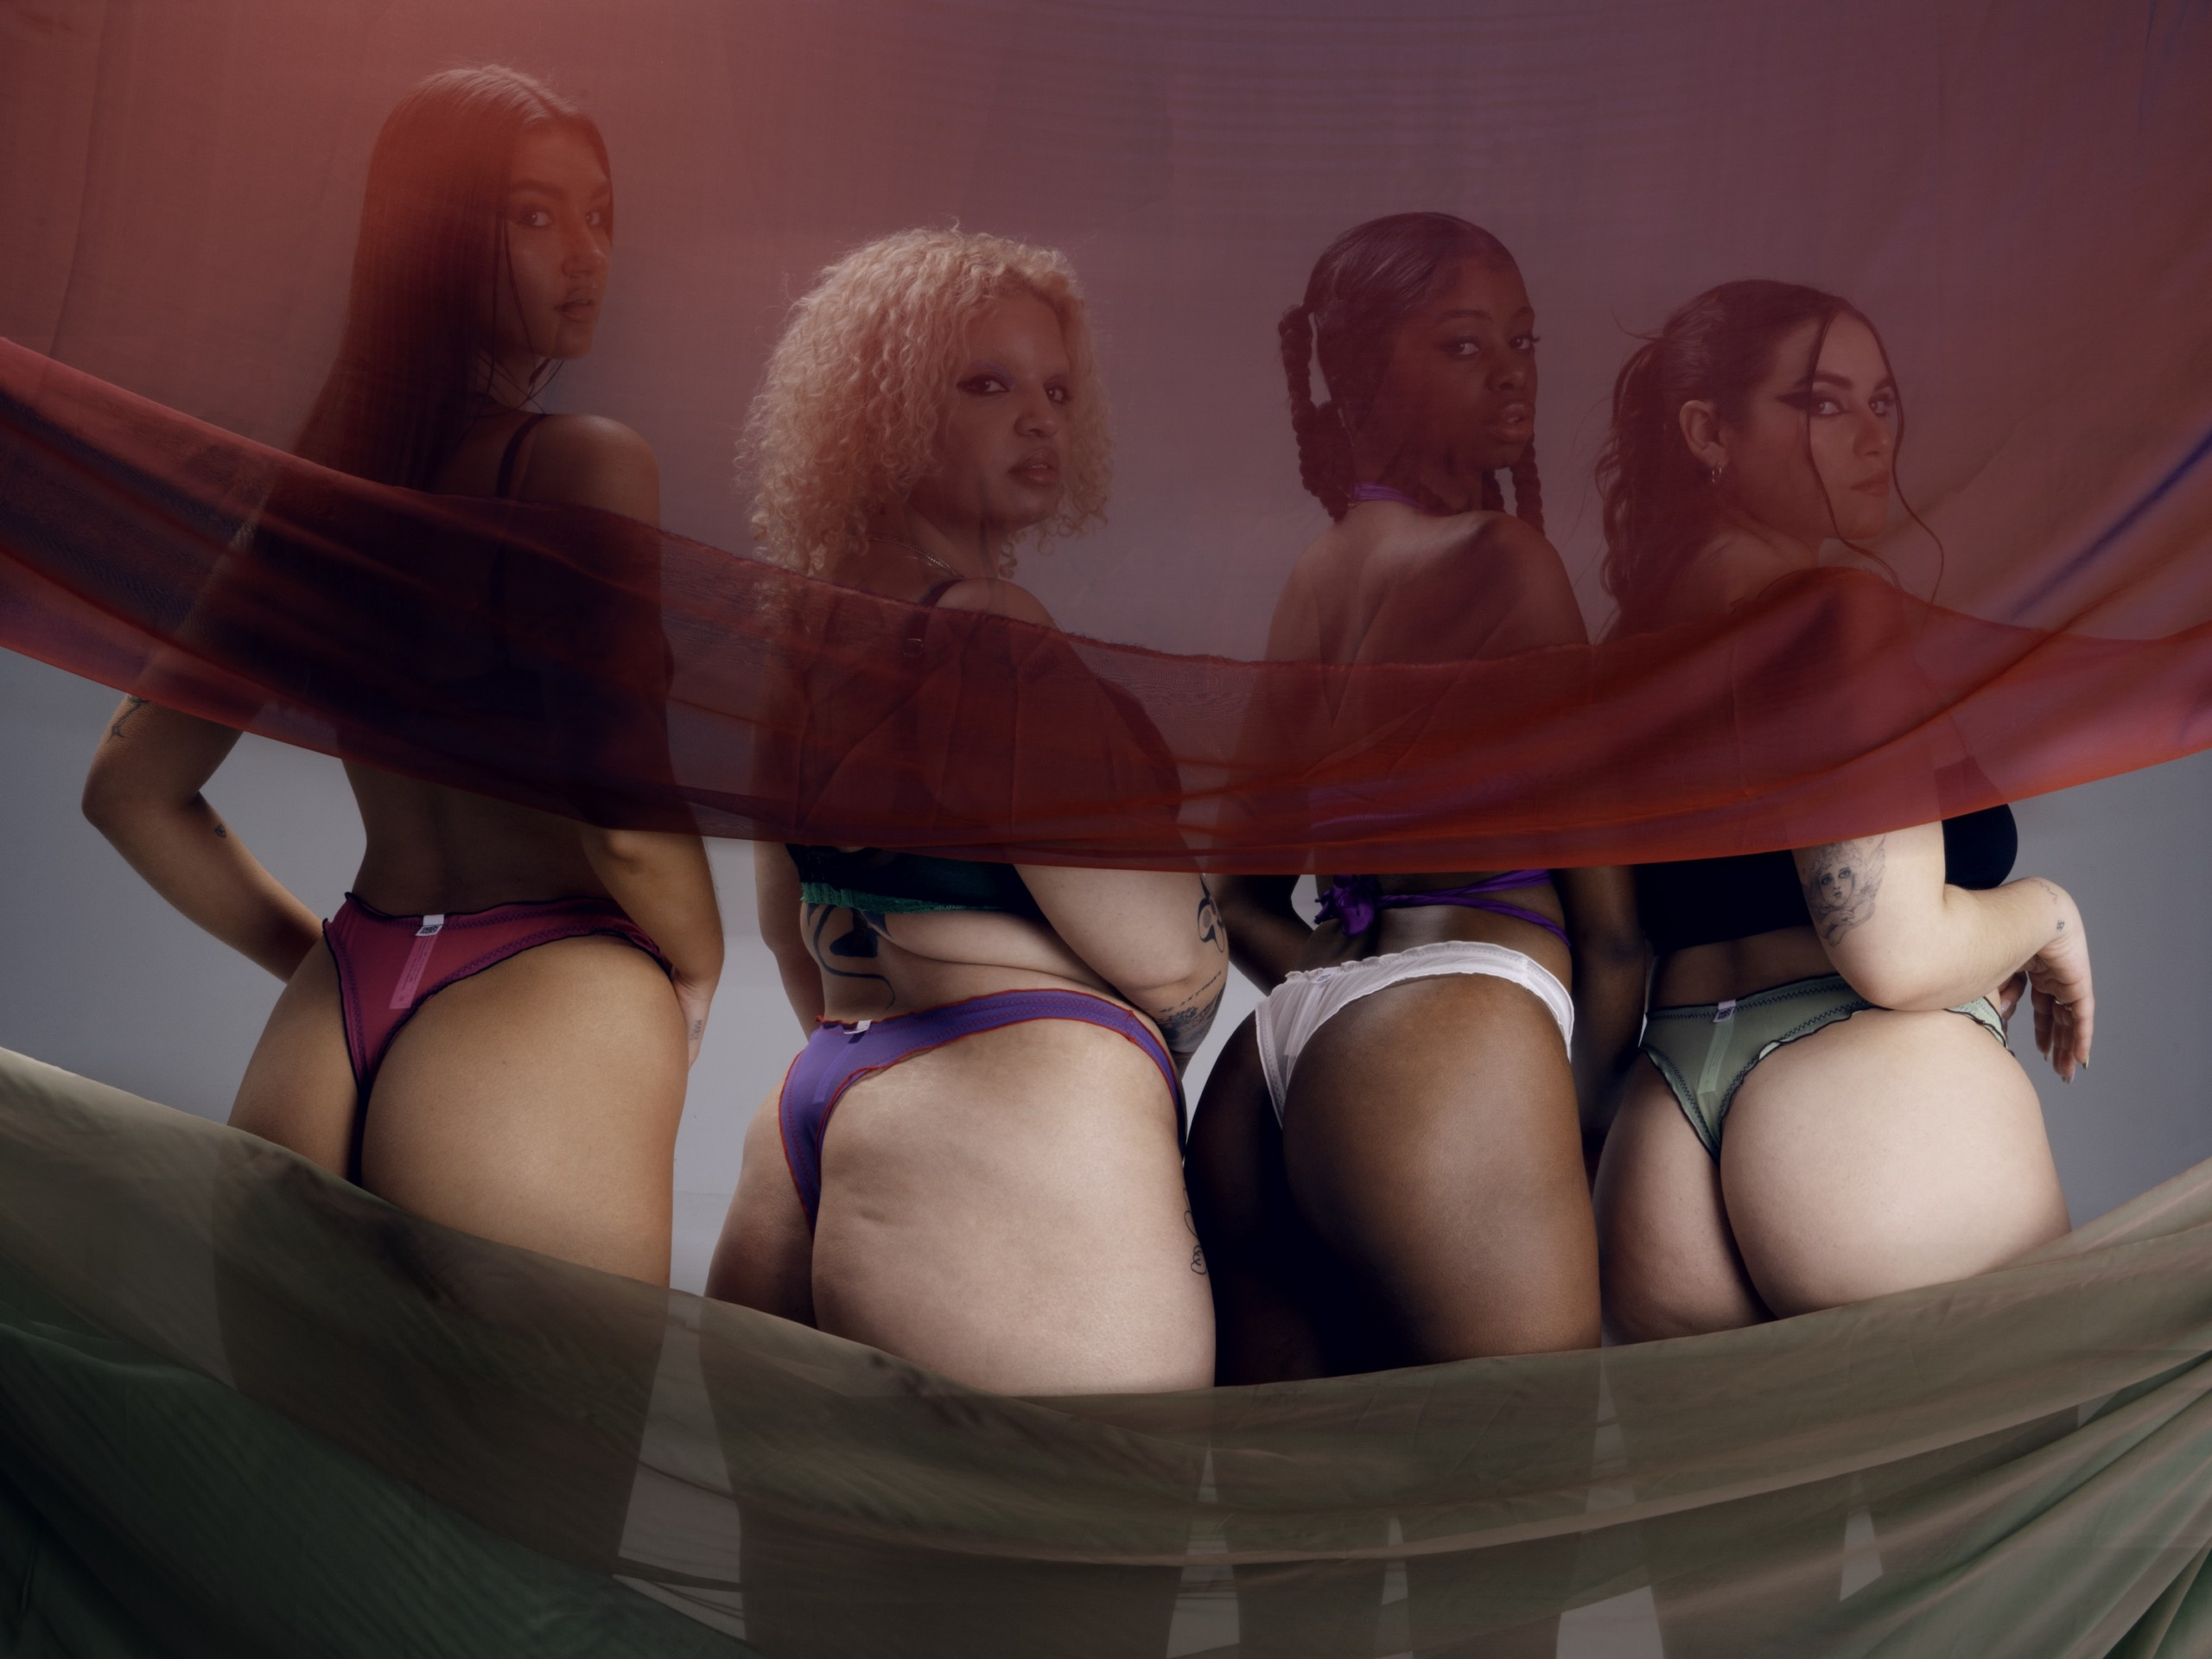 4 models wearing siren basics mesh thongs have back to the camera, with red mesh fabric covering their heads, with heads turned and looking at camera